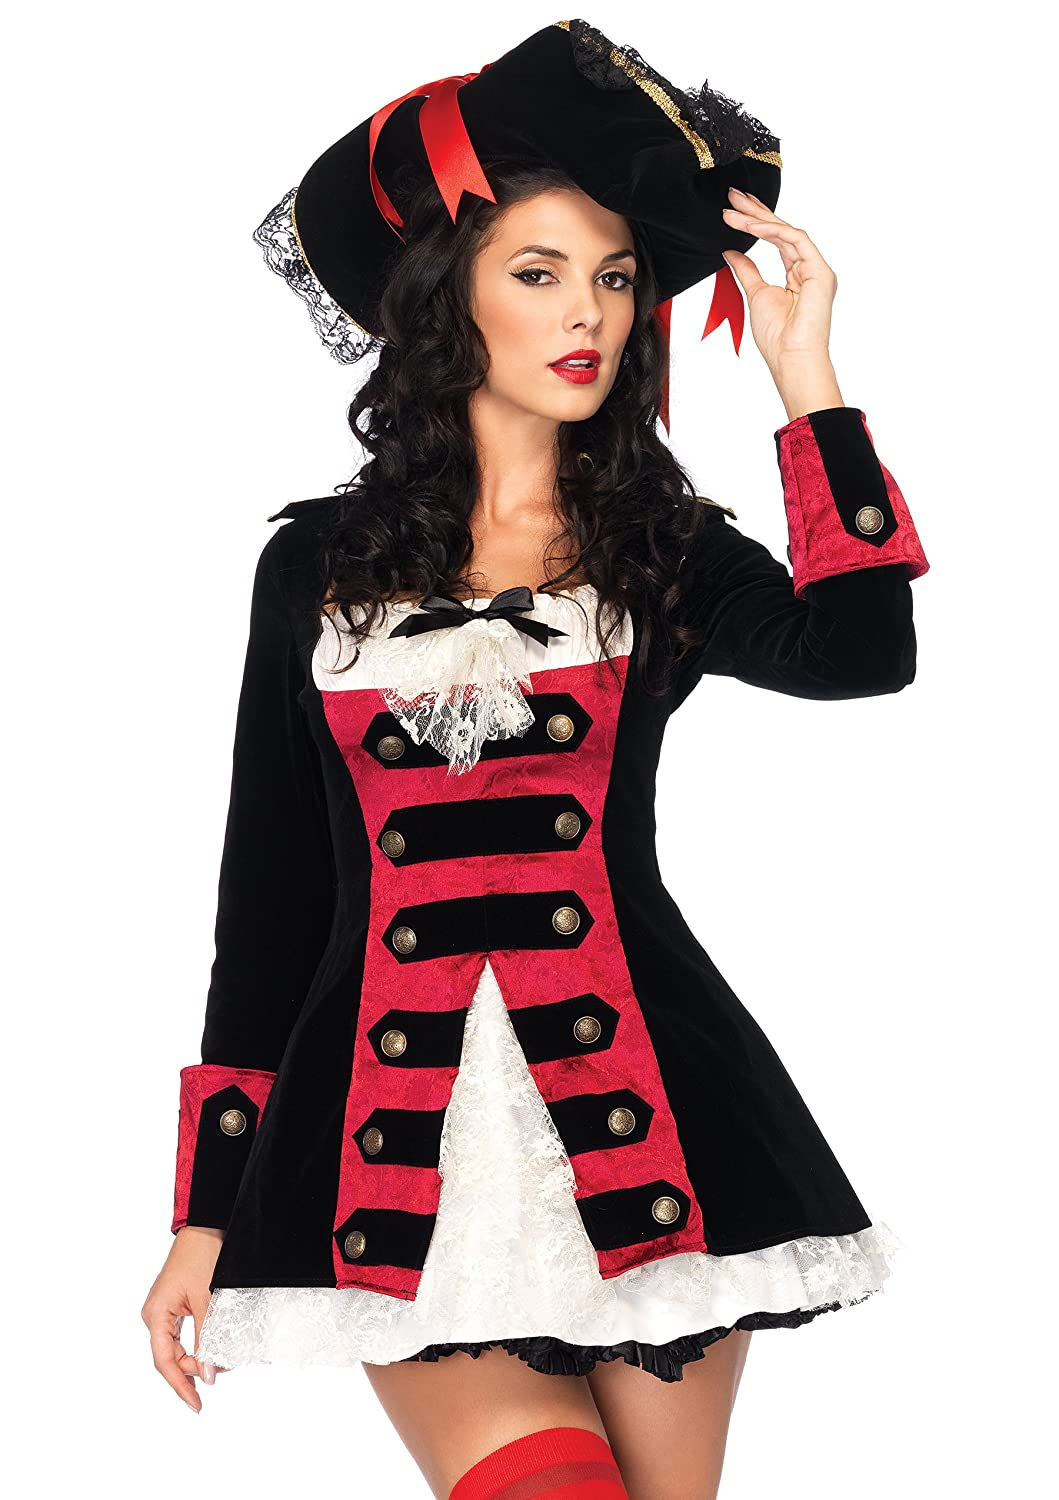 Leg Avenue Women's Charming Pirate Captain Layered Waistcoat Dress With Lace Accent Leg Avenue Costumes